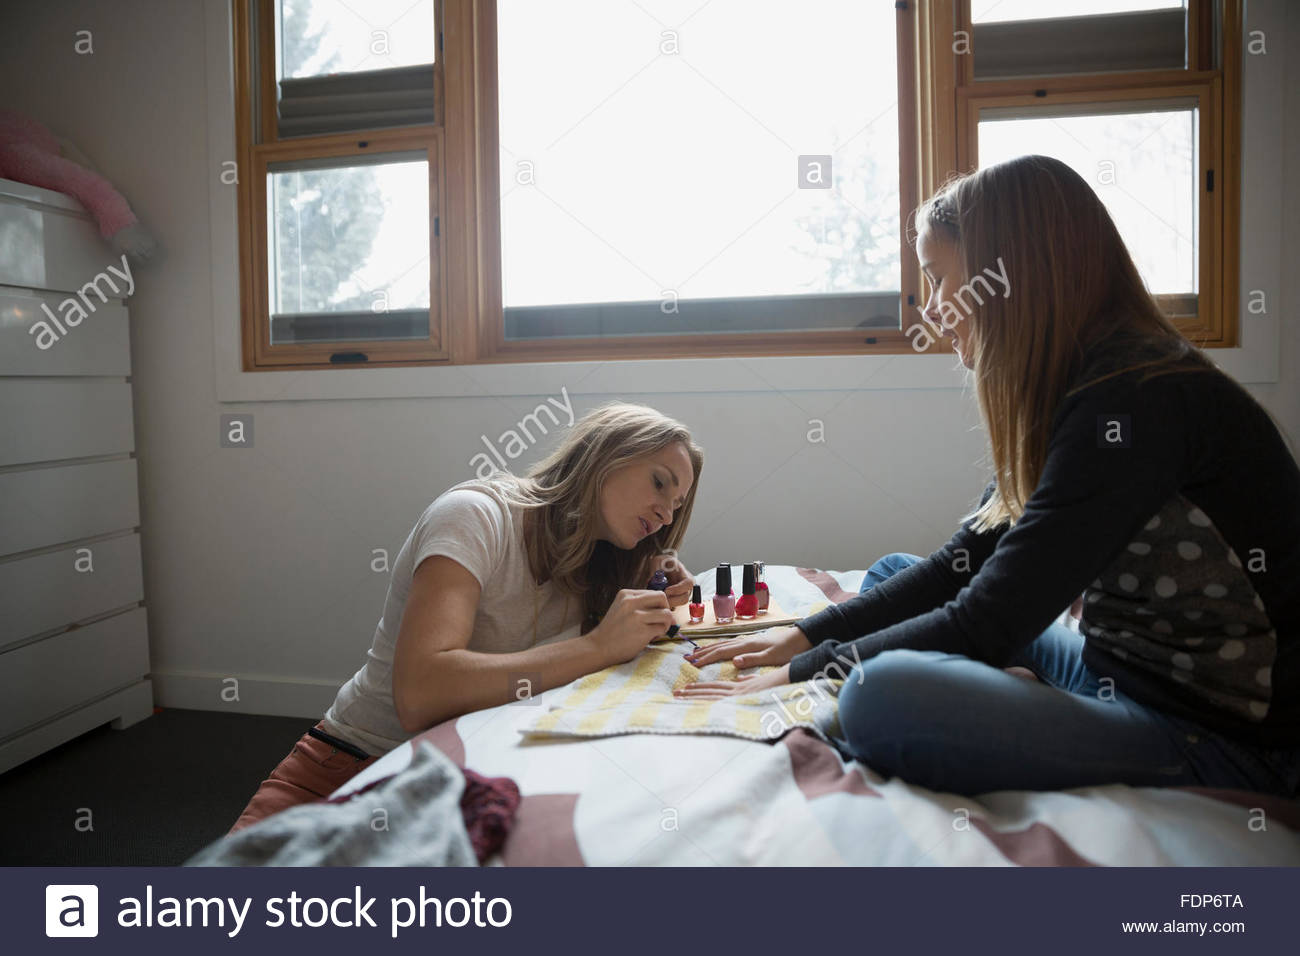 mother painting daughters fingernails on bed - Stock Image